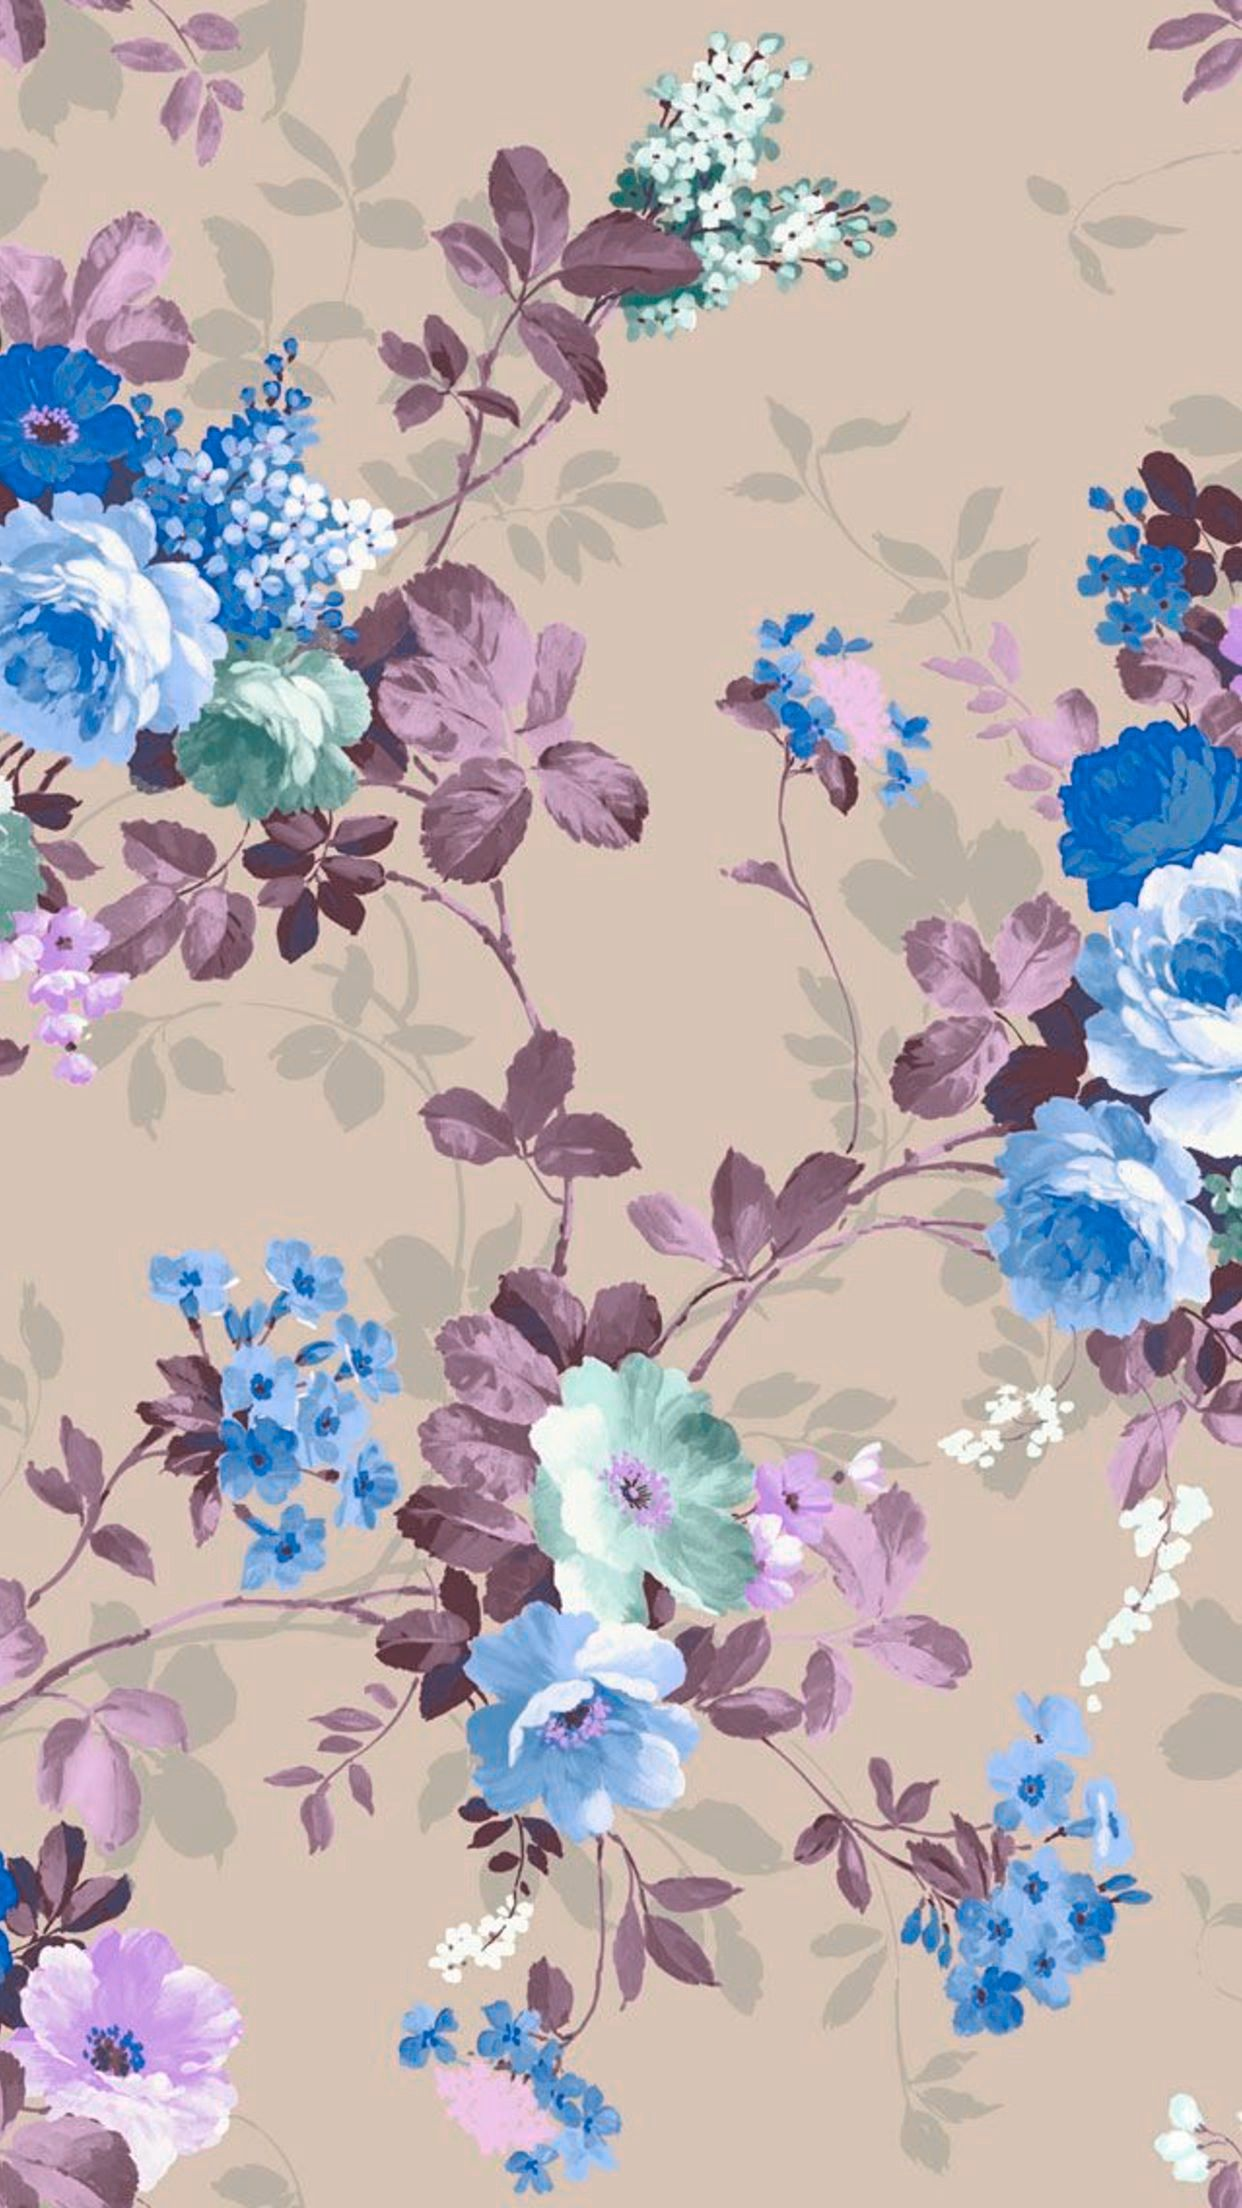 Iphone Wallpapers Floral Backgrounds Flower Paper Scrapbook Vintage Google Search Color Wallpaper